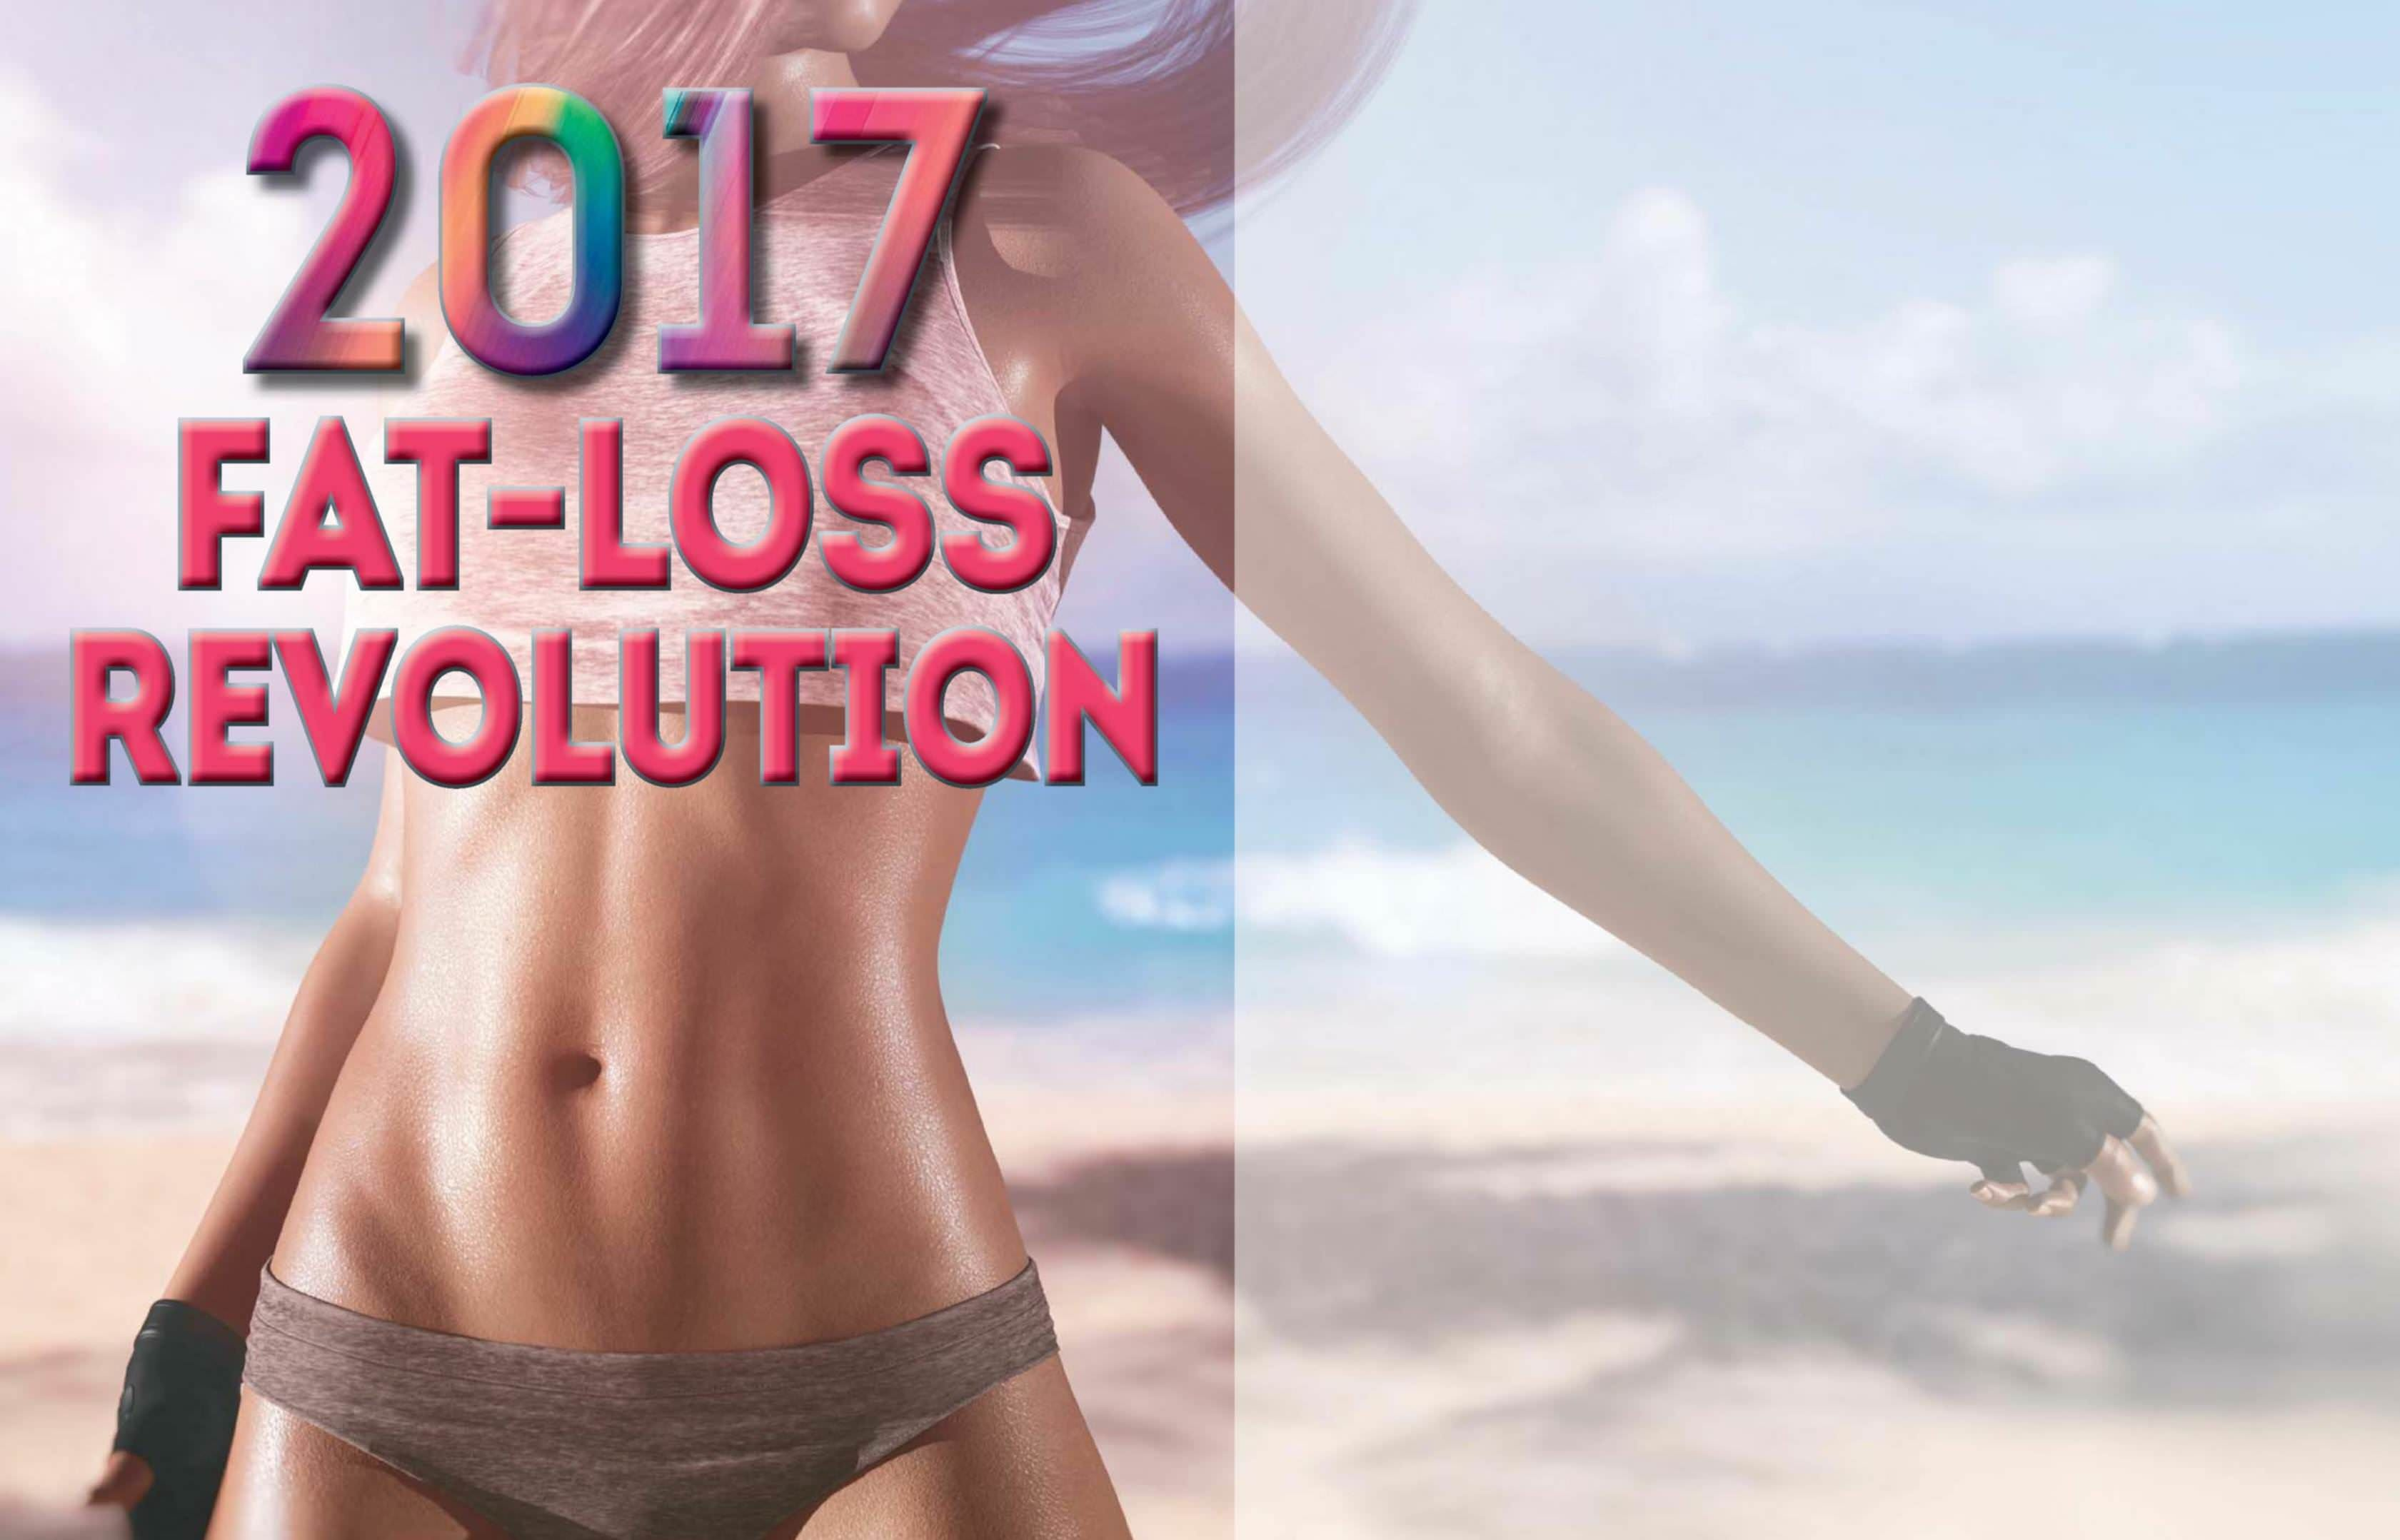 2017 Fat Loss Revolution